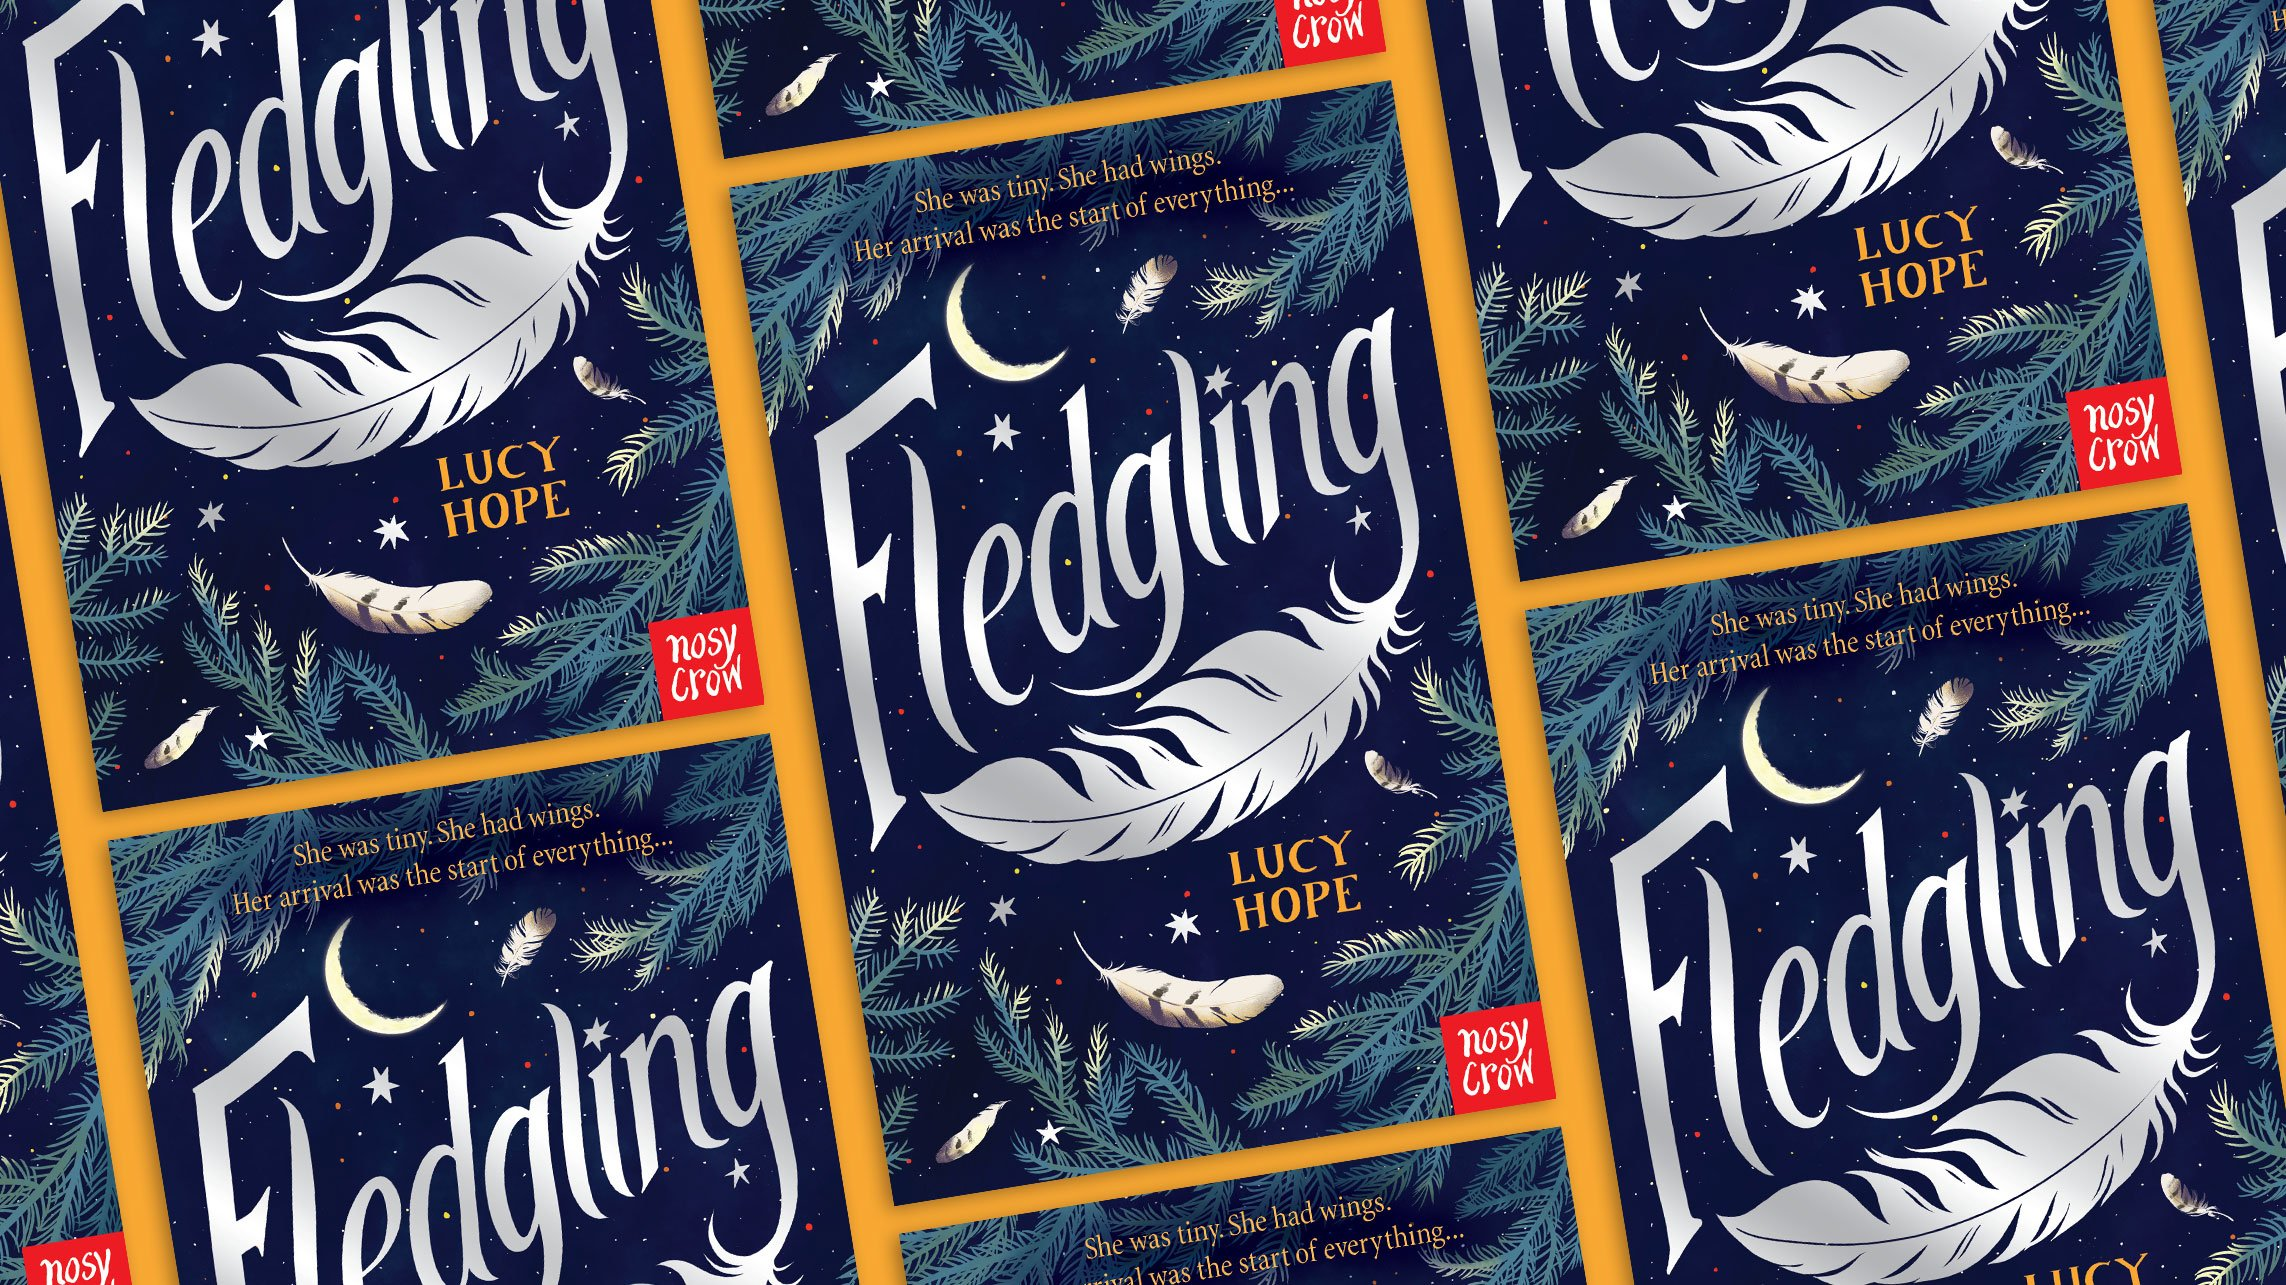 Fledgling by Lucy Hope